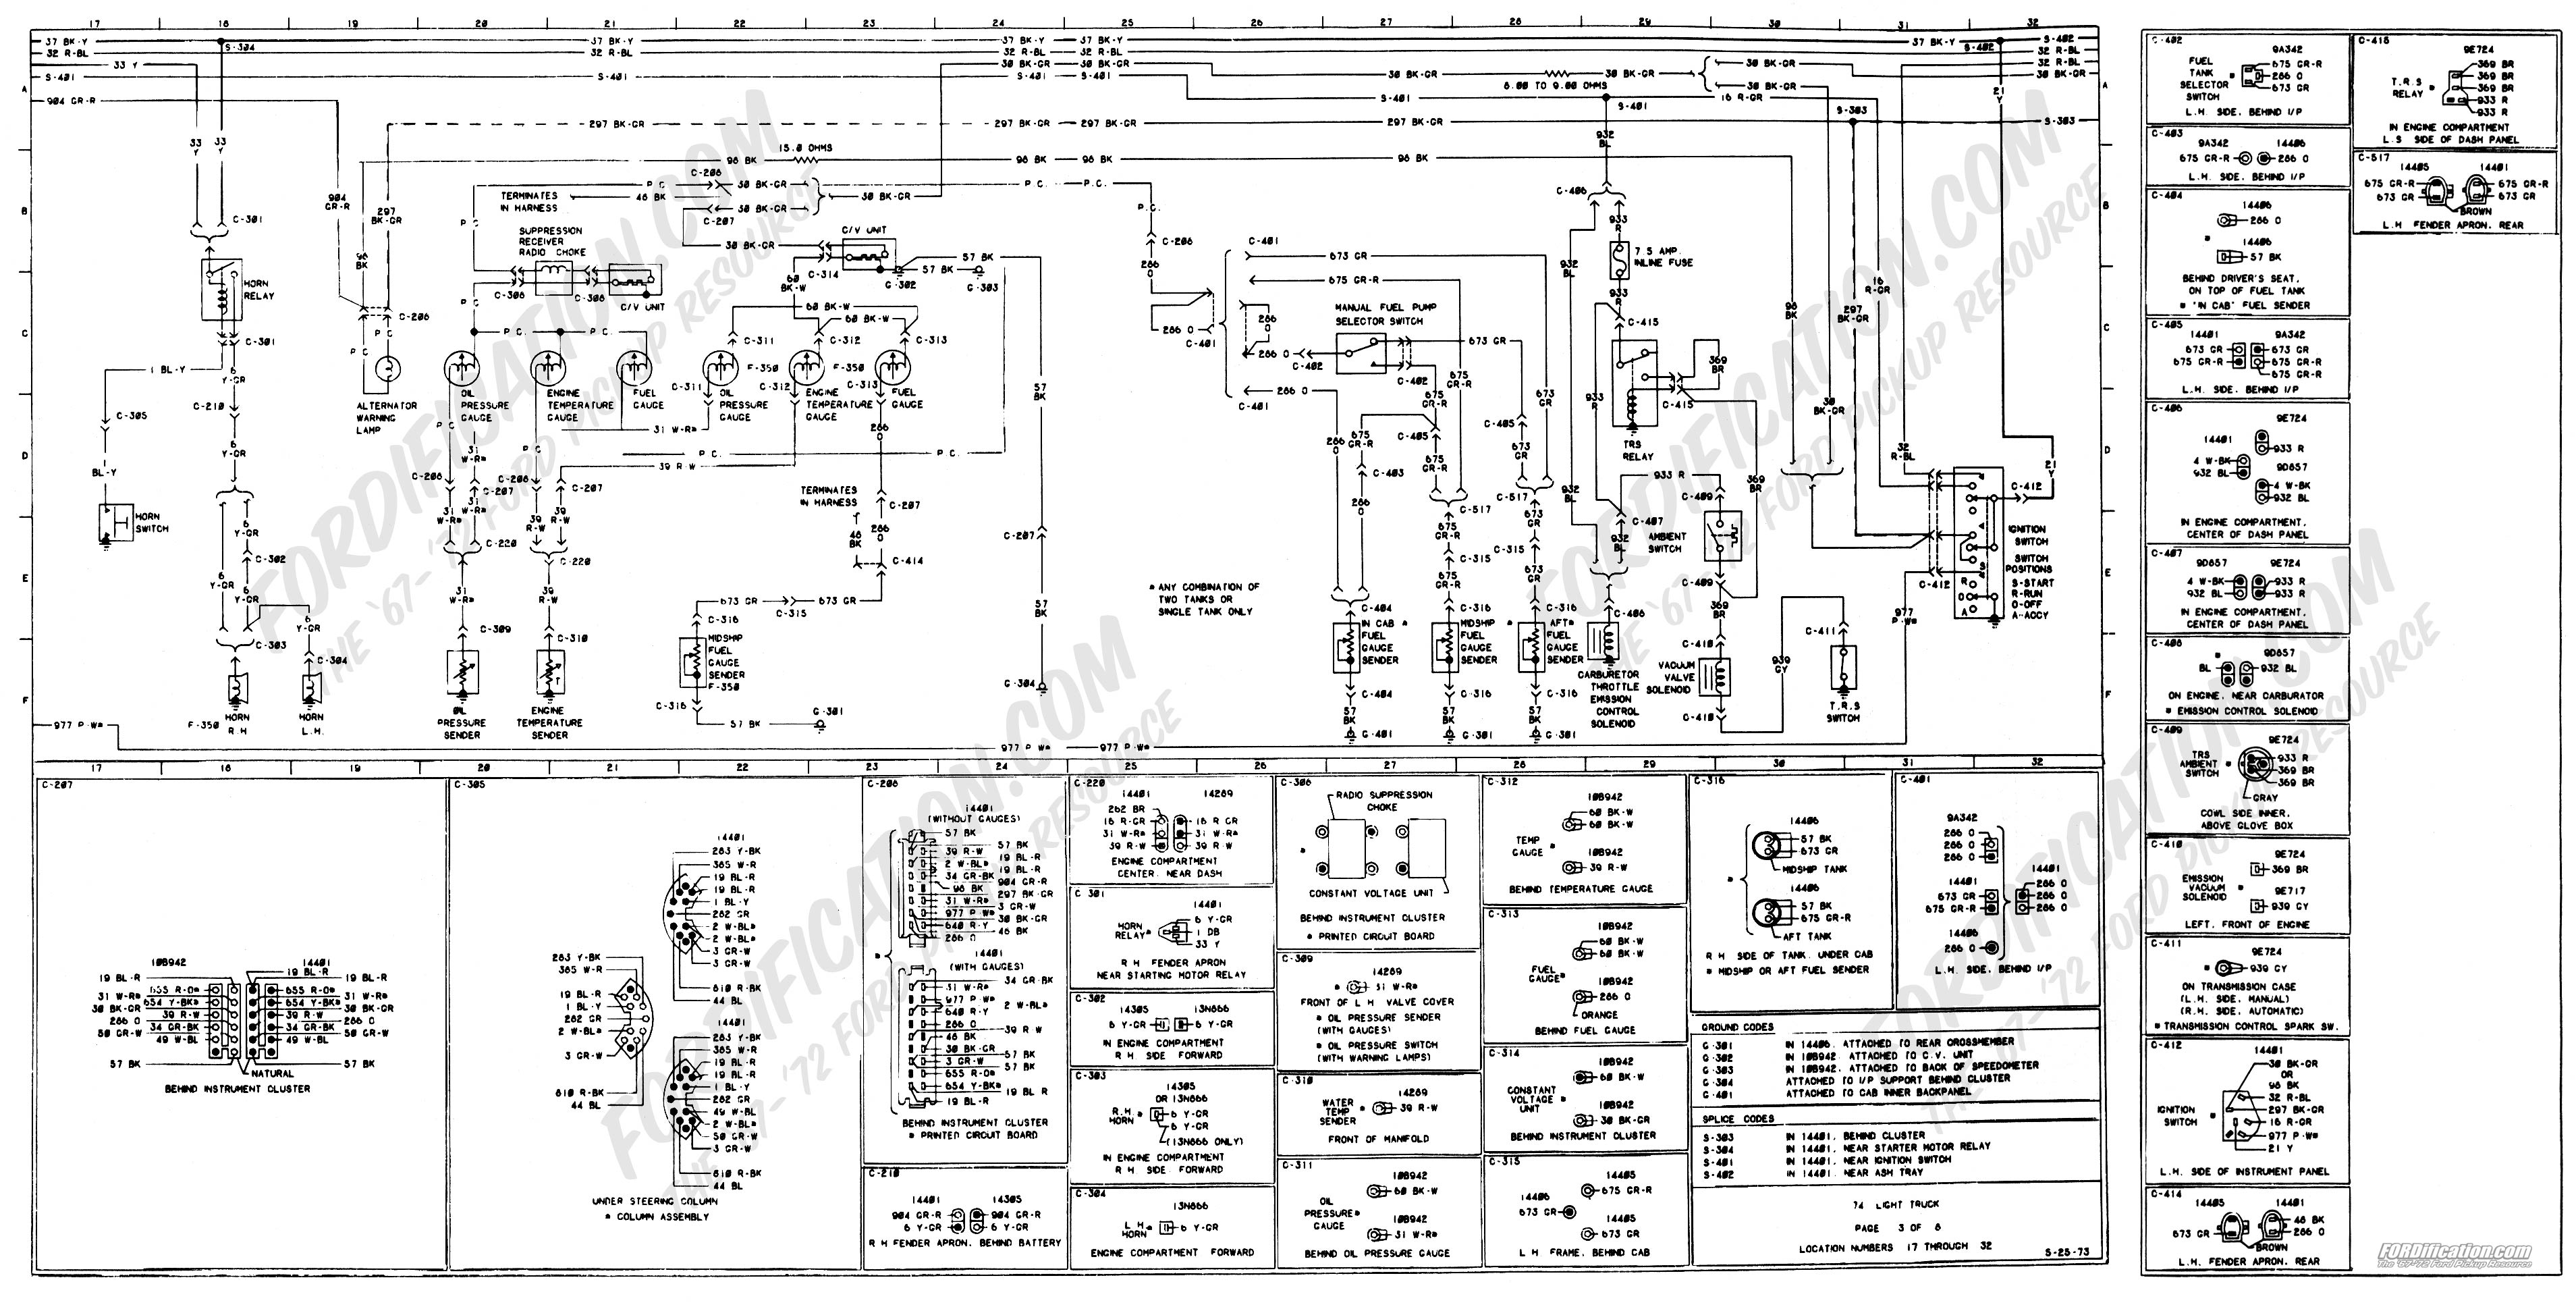 1973 1979 Ford Truck Wiring Diagrams Schematics Electrical Control Installation And Troubleshooting Page 03